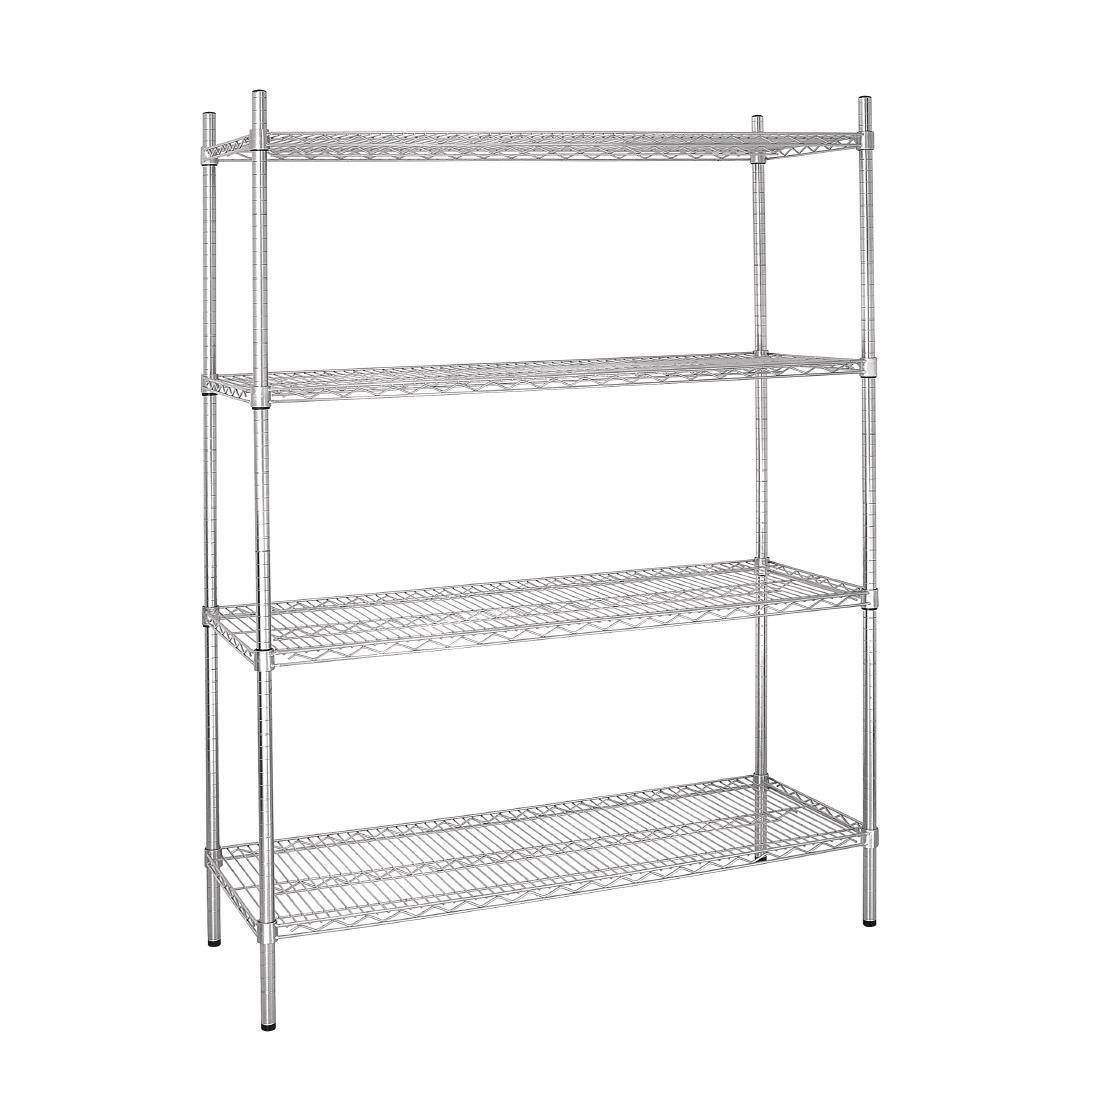 Vogue 4 Tier Wire Shelving Kit 1525x460mm - L929